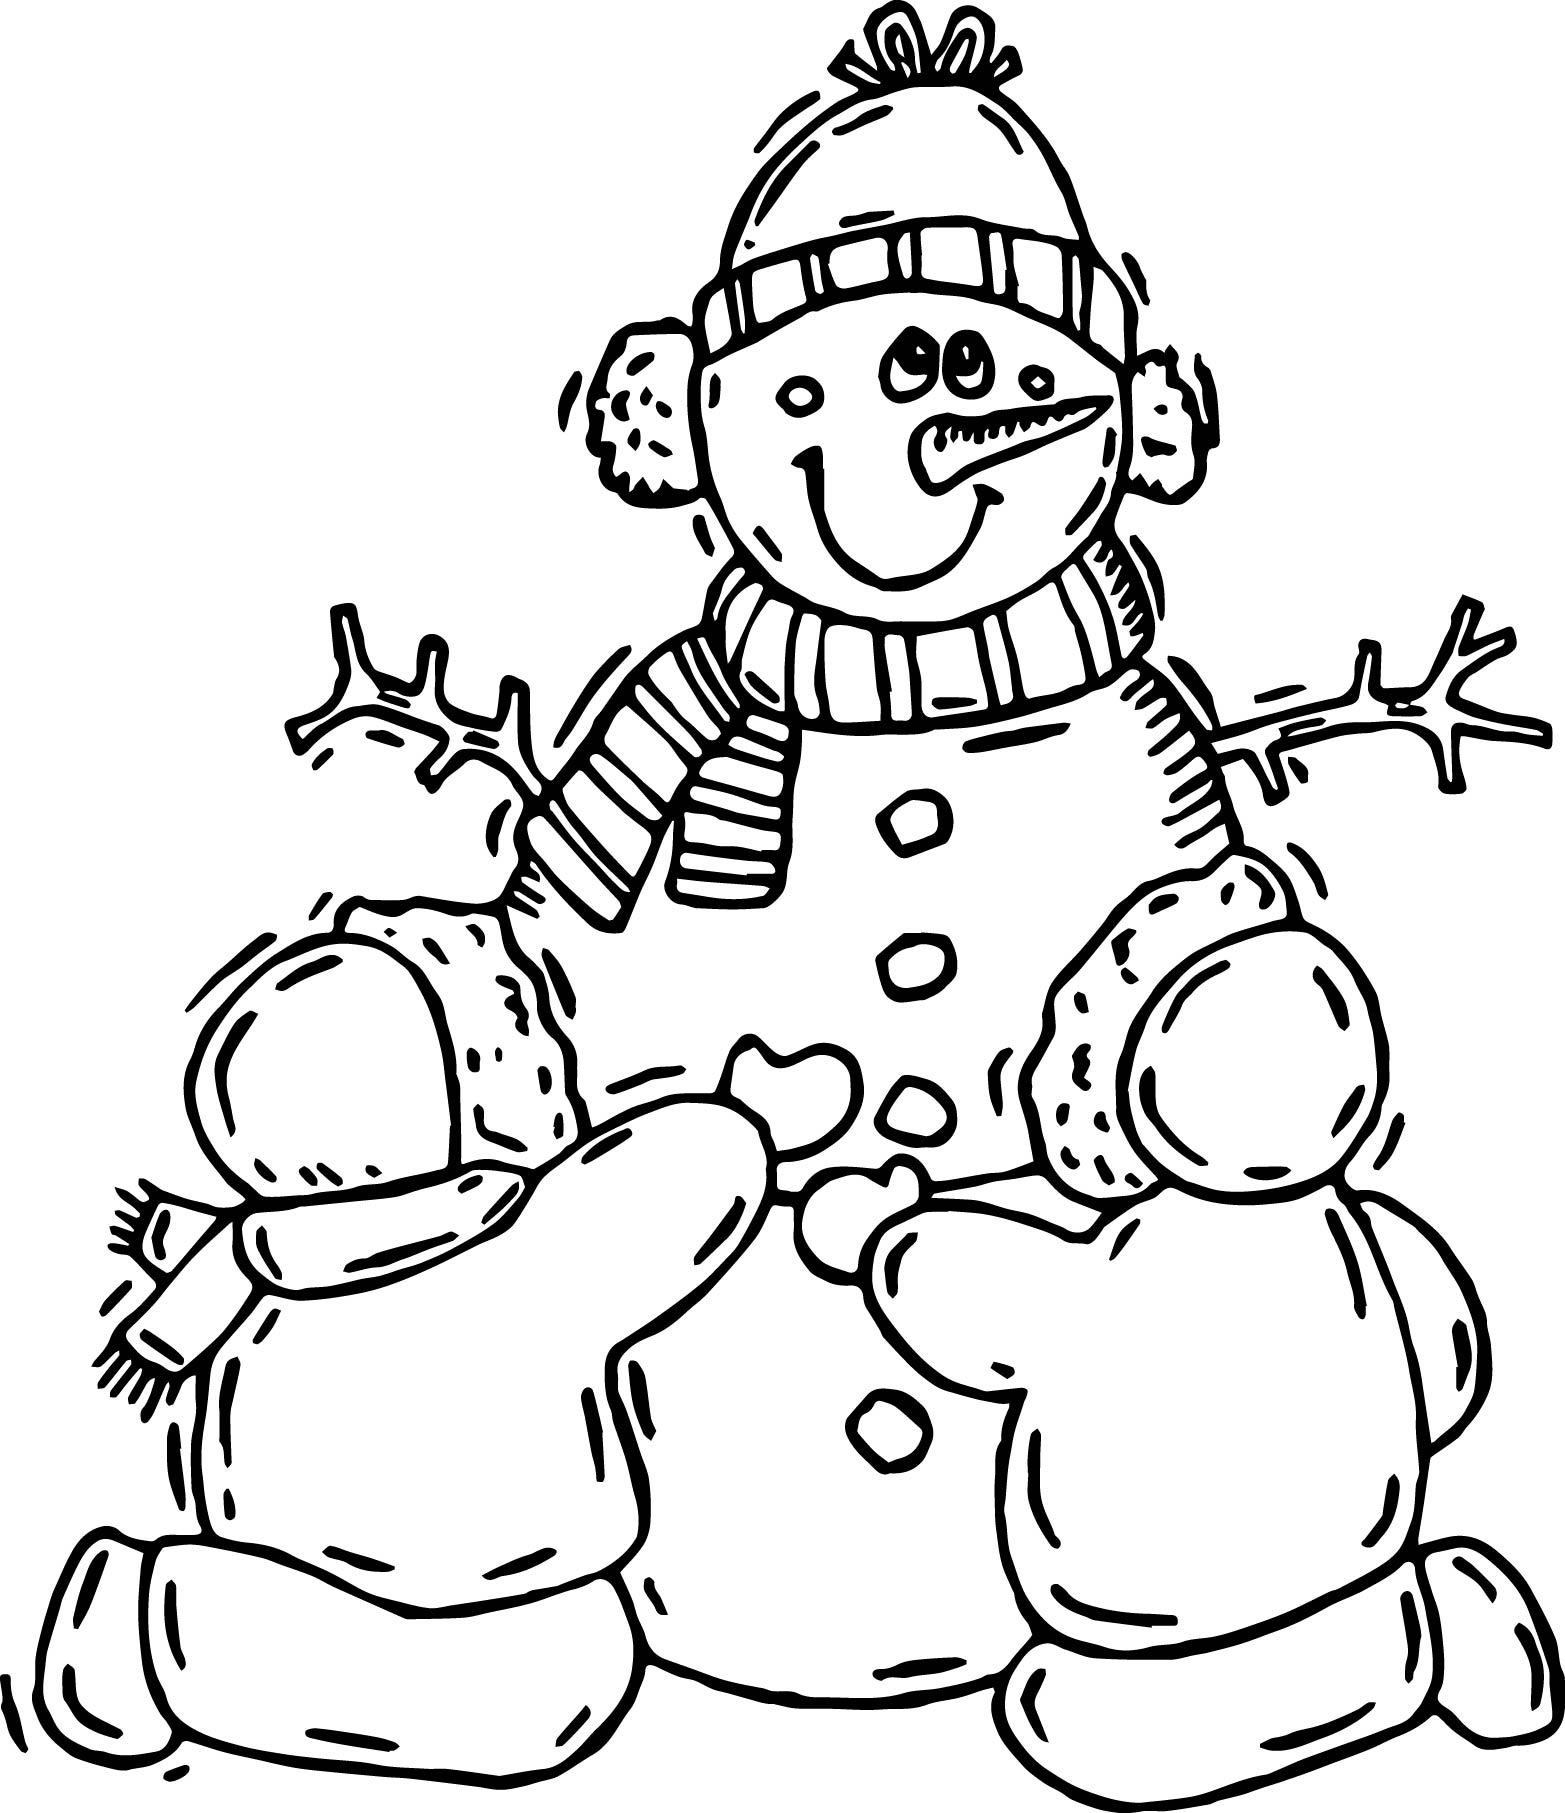 physical activities coloring pages - photo#26